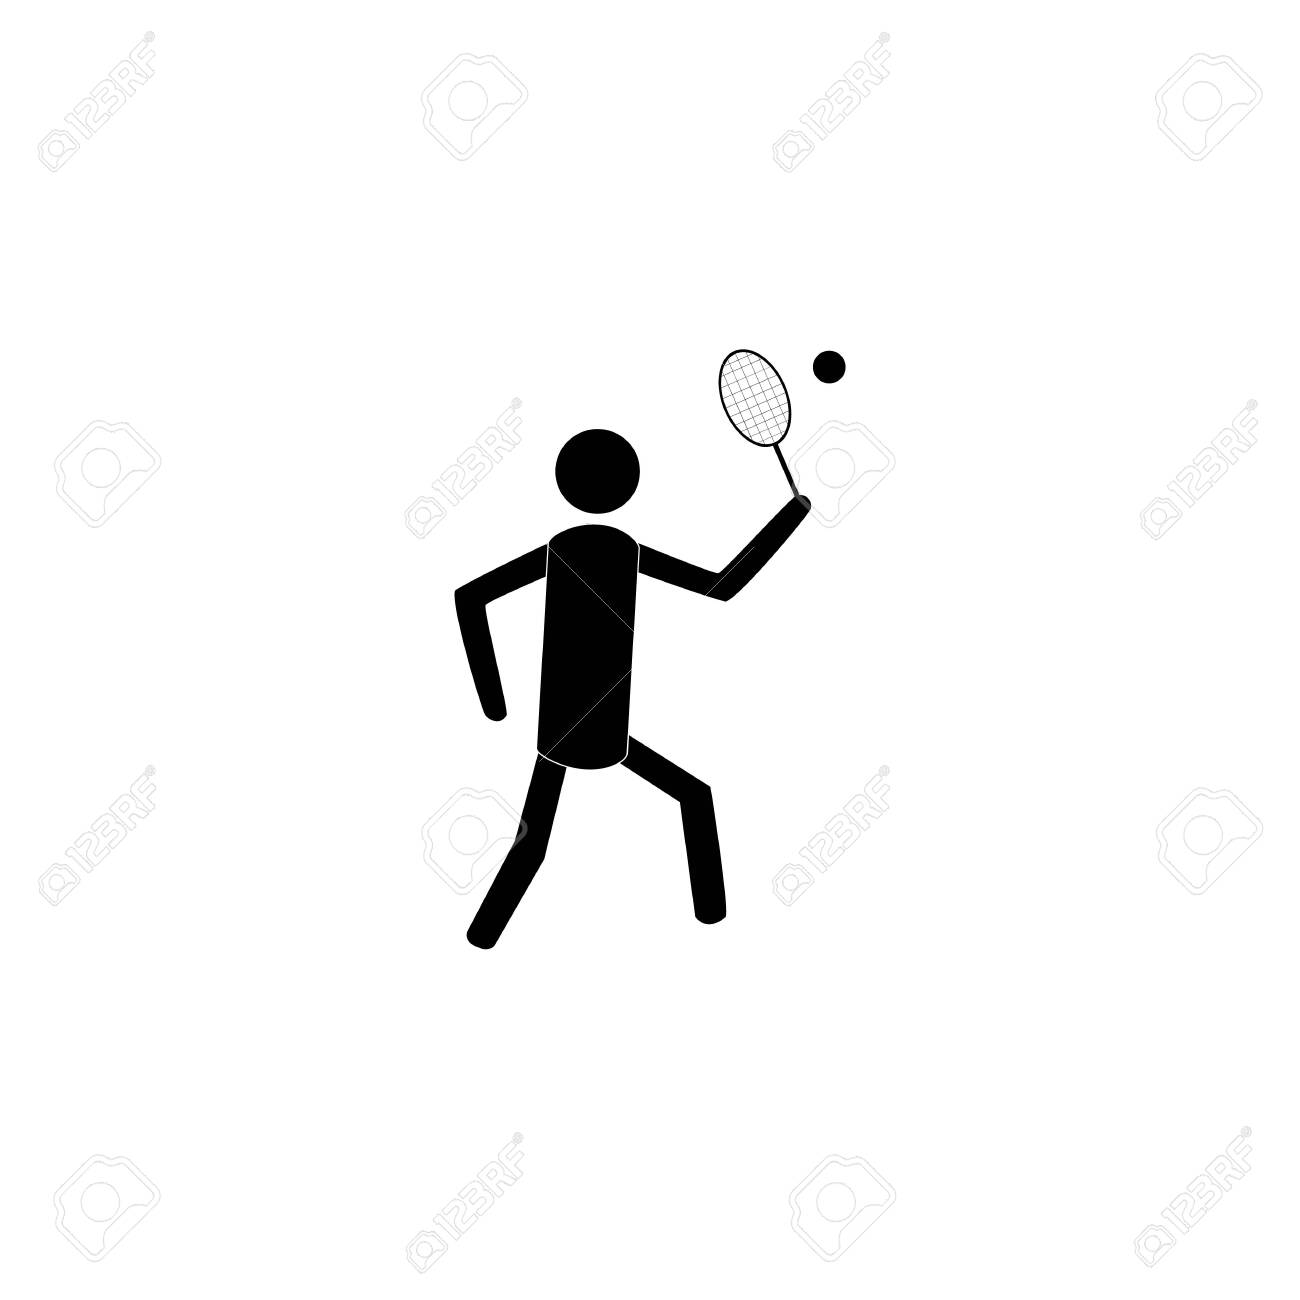 Sports. Tennis icon. Silhouette emblem tournament. Logo professional sports, active recreation and leisure. - 150071807